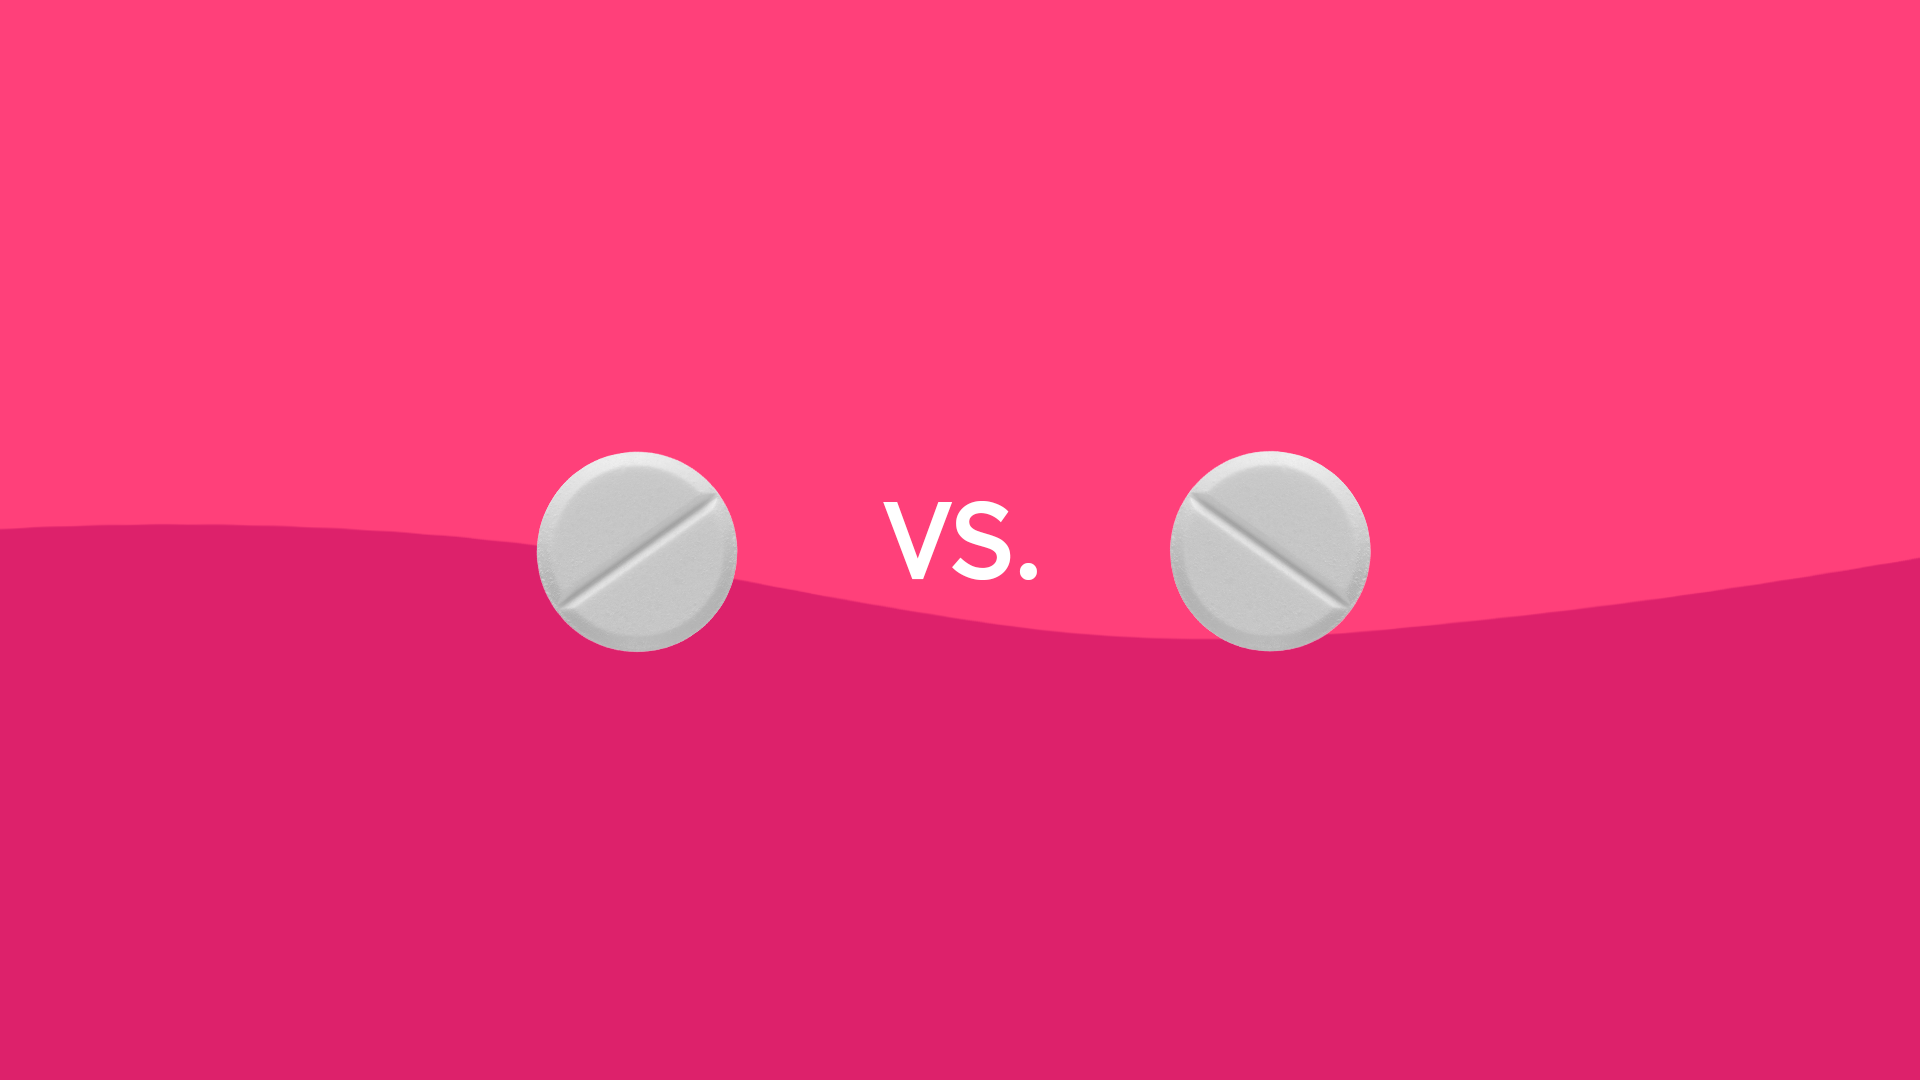 Dexedrine vs. Adderall: Differences, similarities, and which is better for you